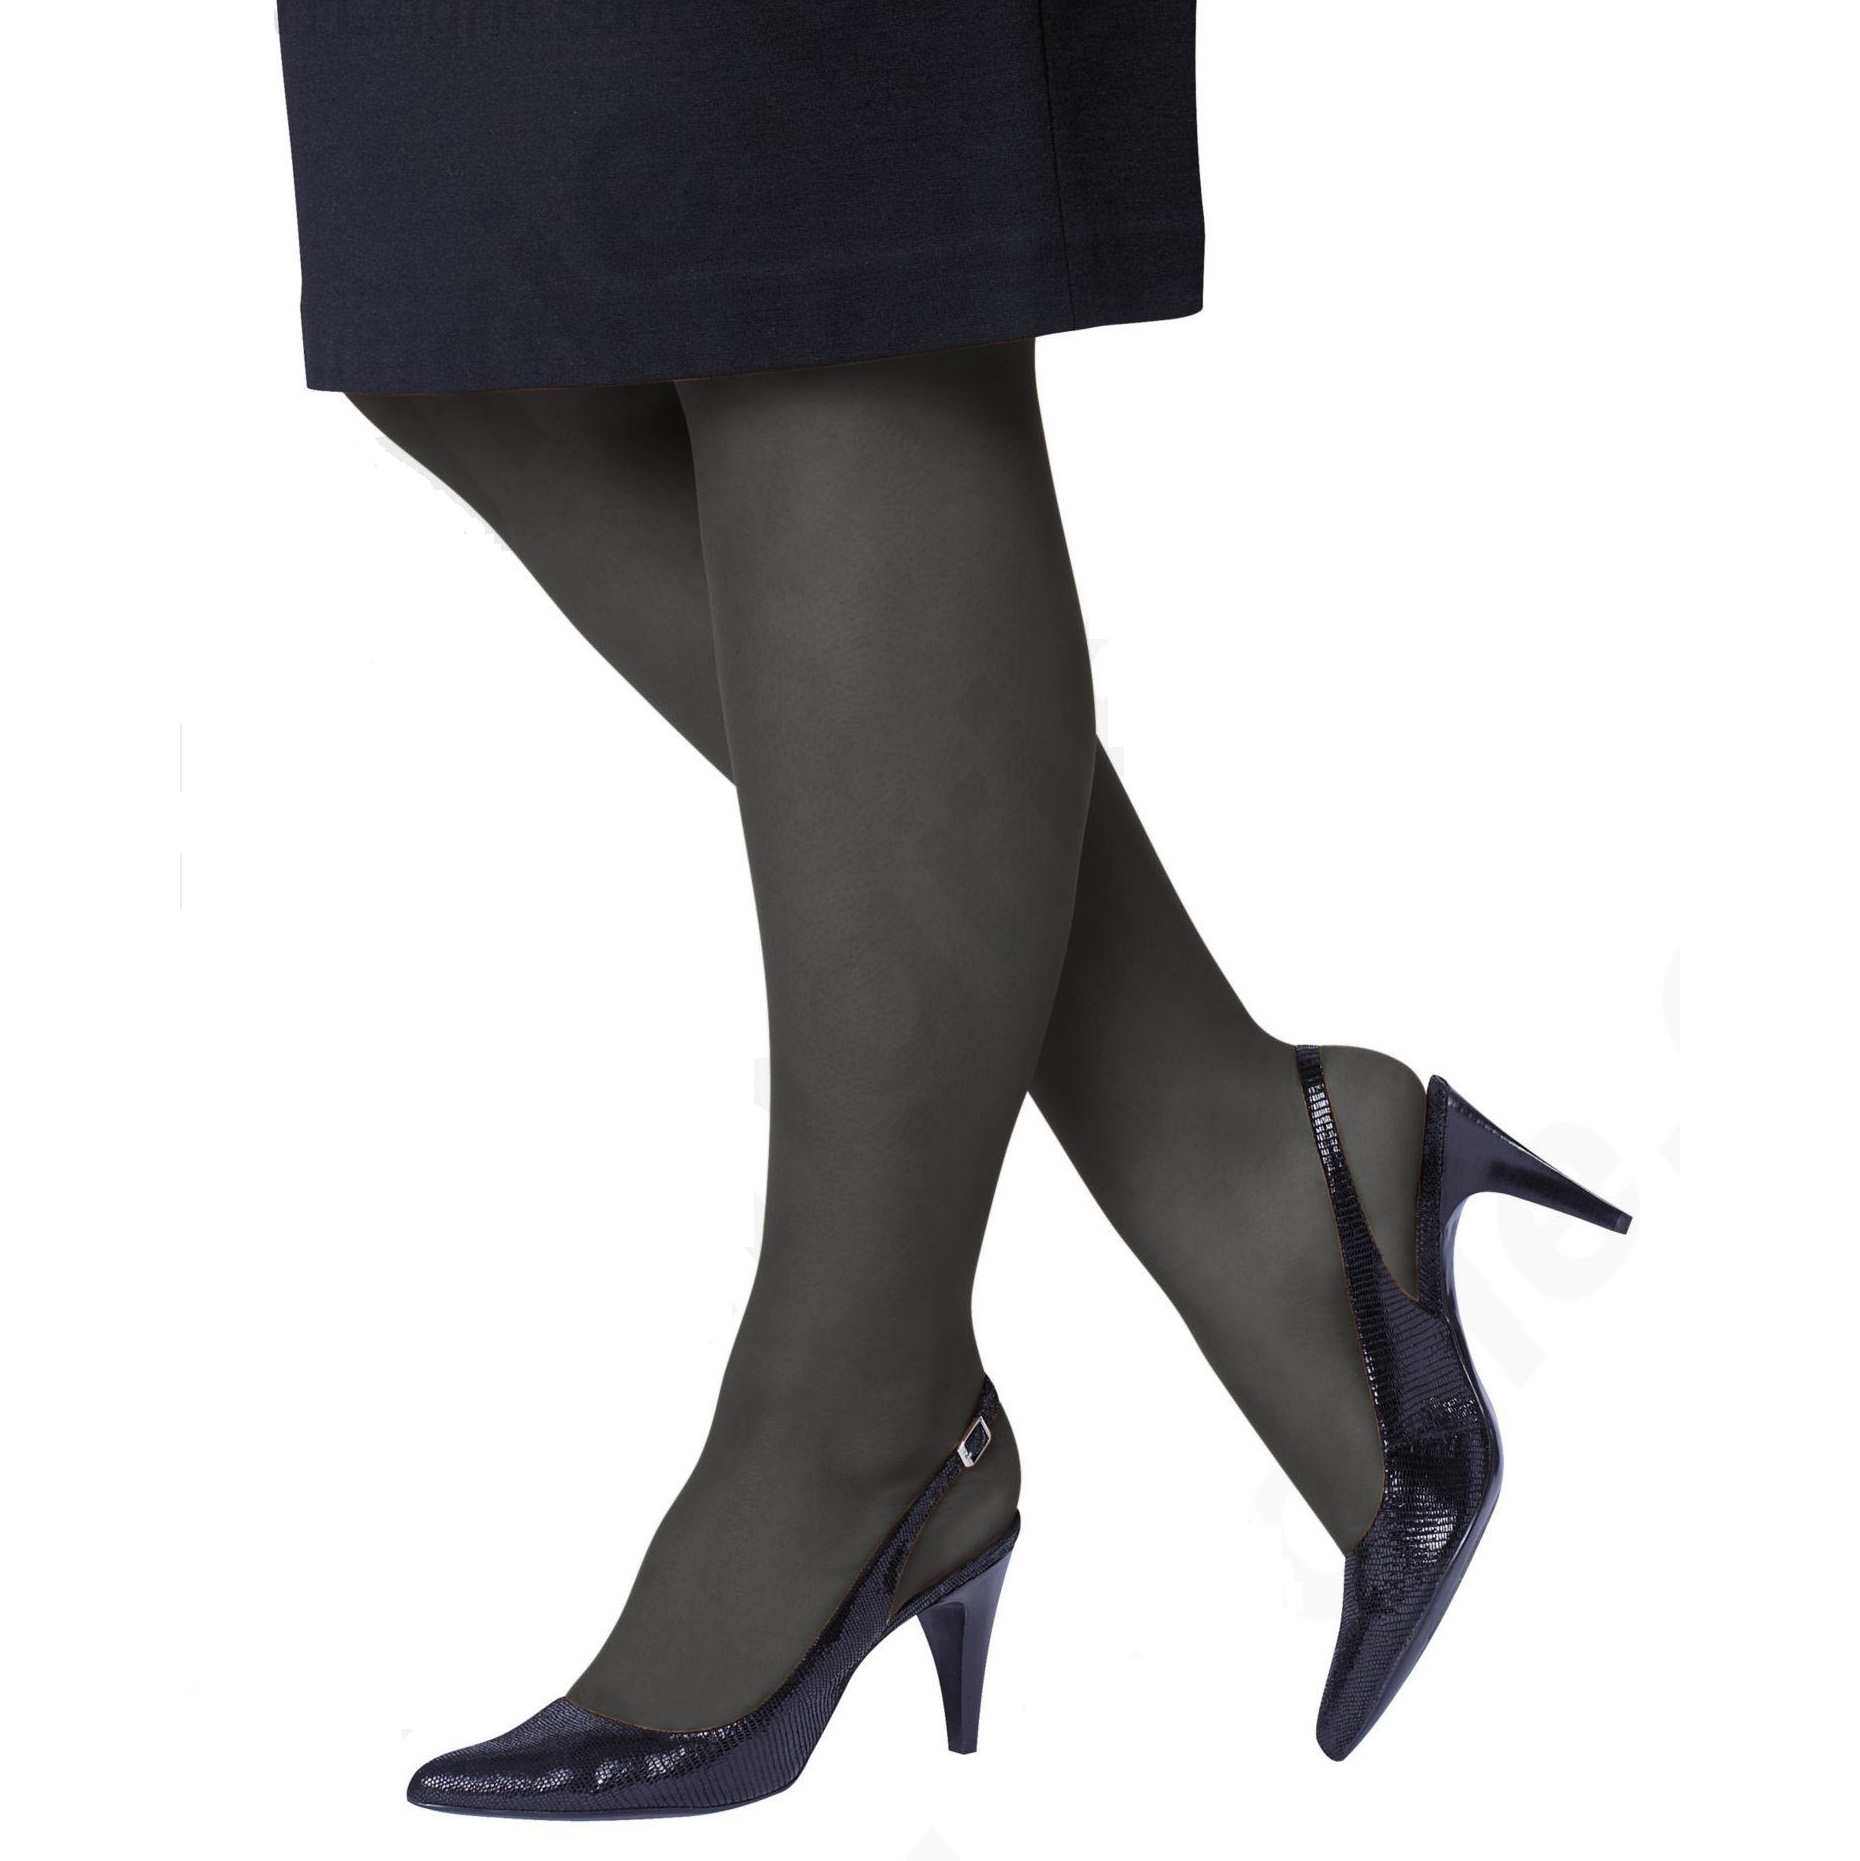 4-Pack Just My Size Control Top Reinforced Toe Pantyhose 1049439